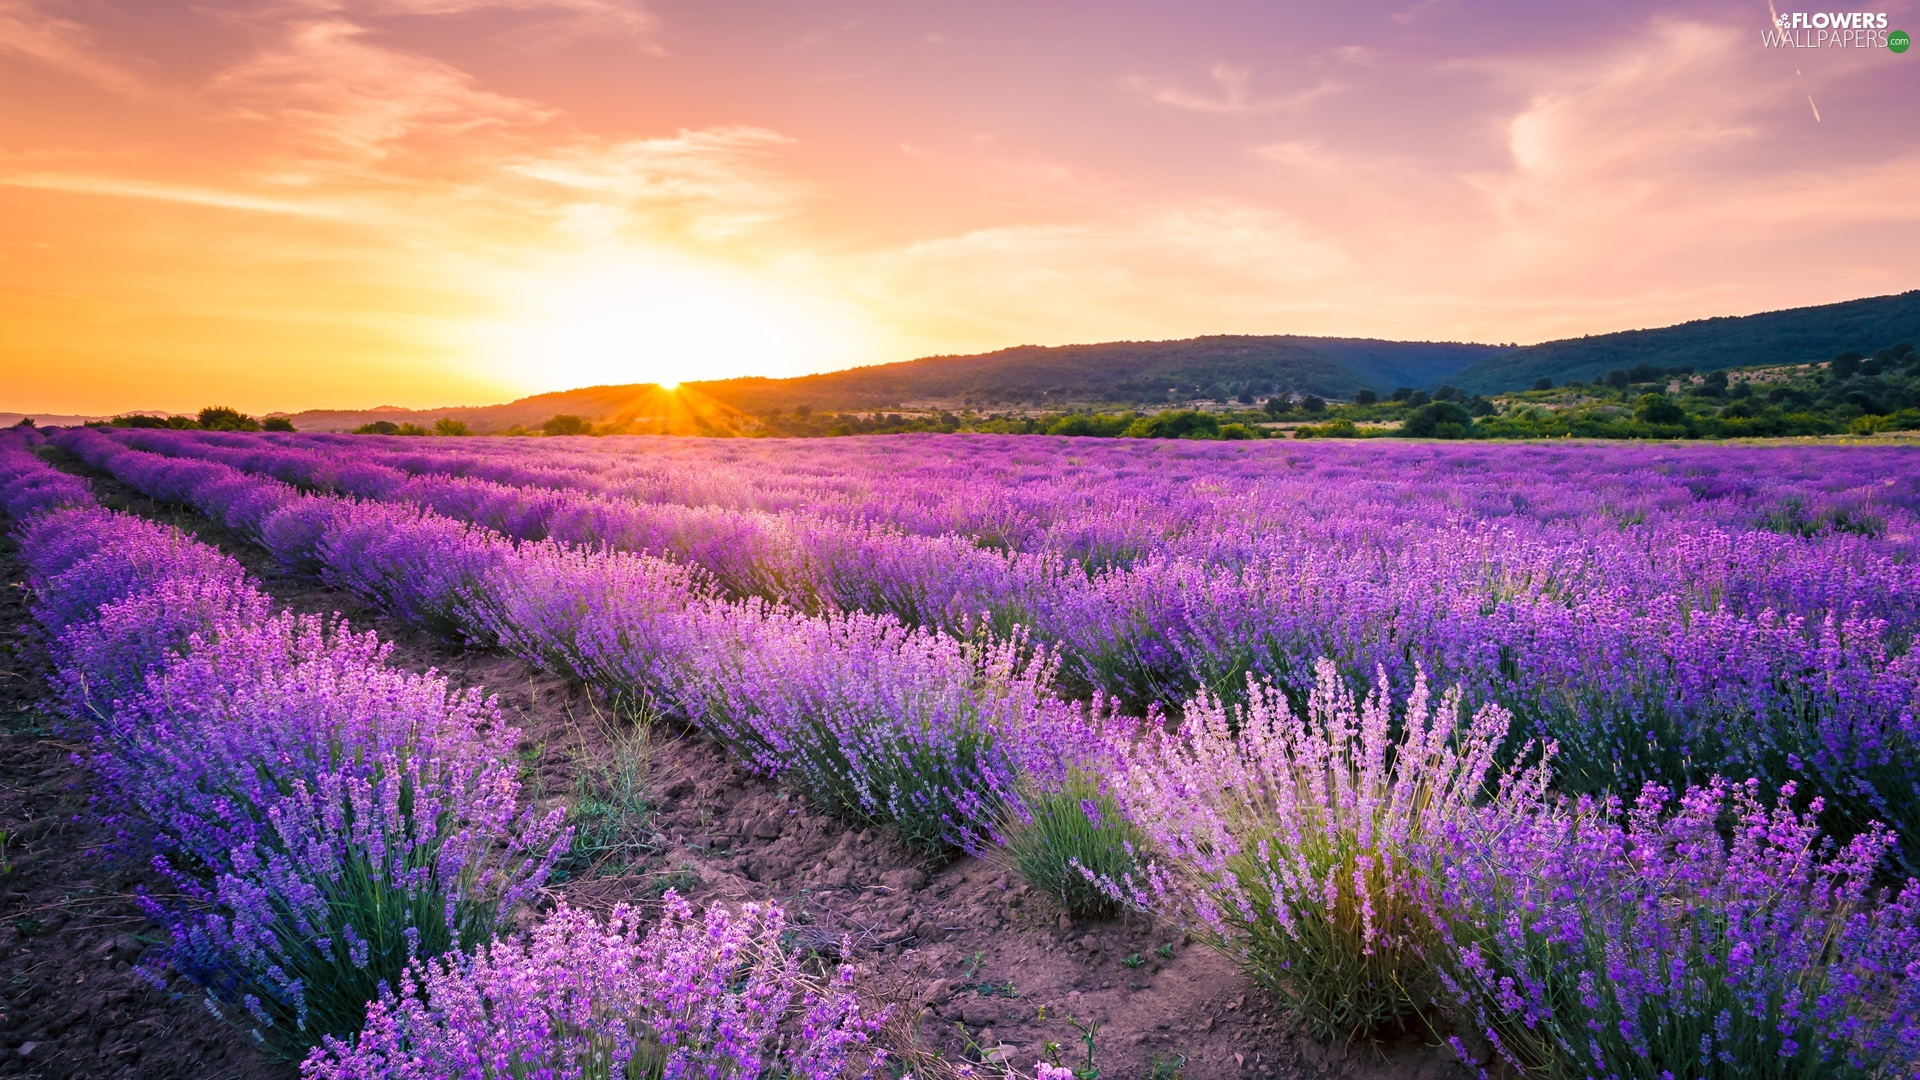 trees, Field, The Hills, Sunrise, viewes, lavender